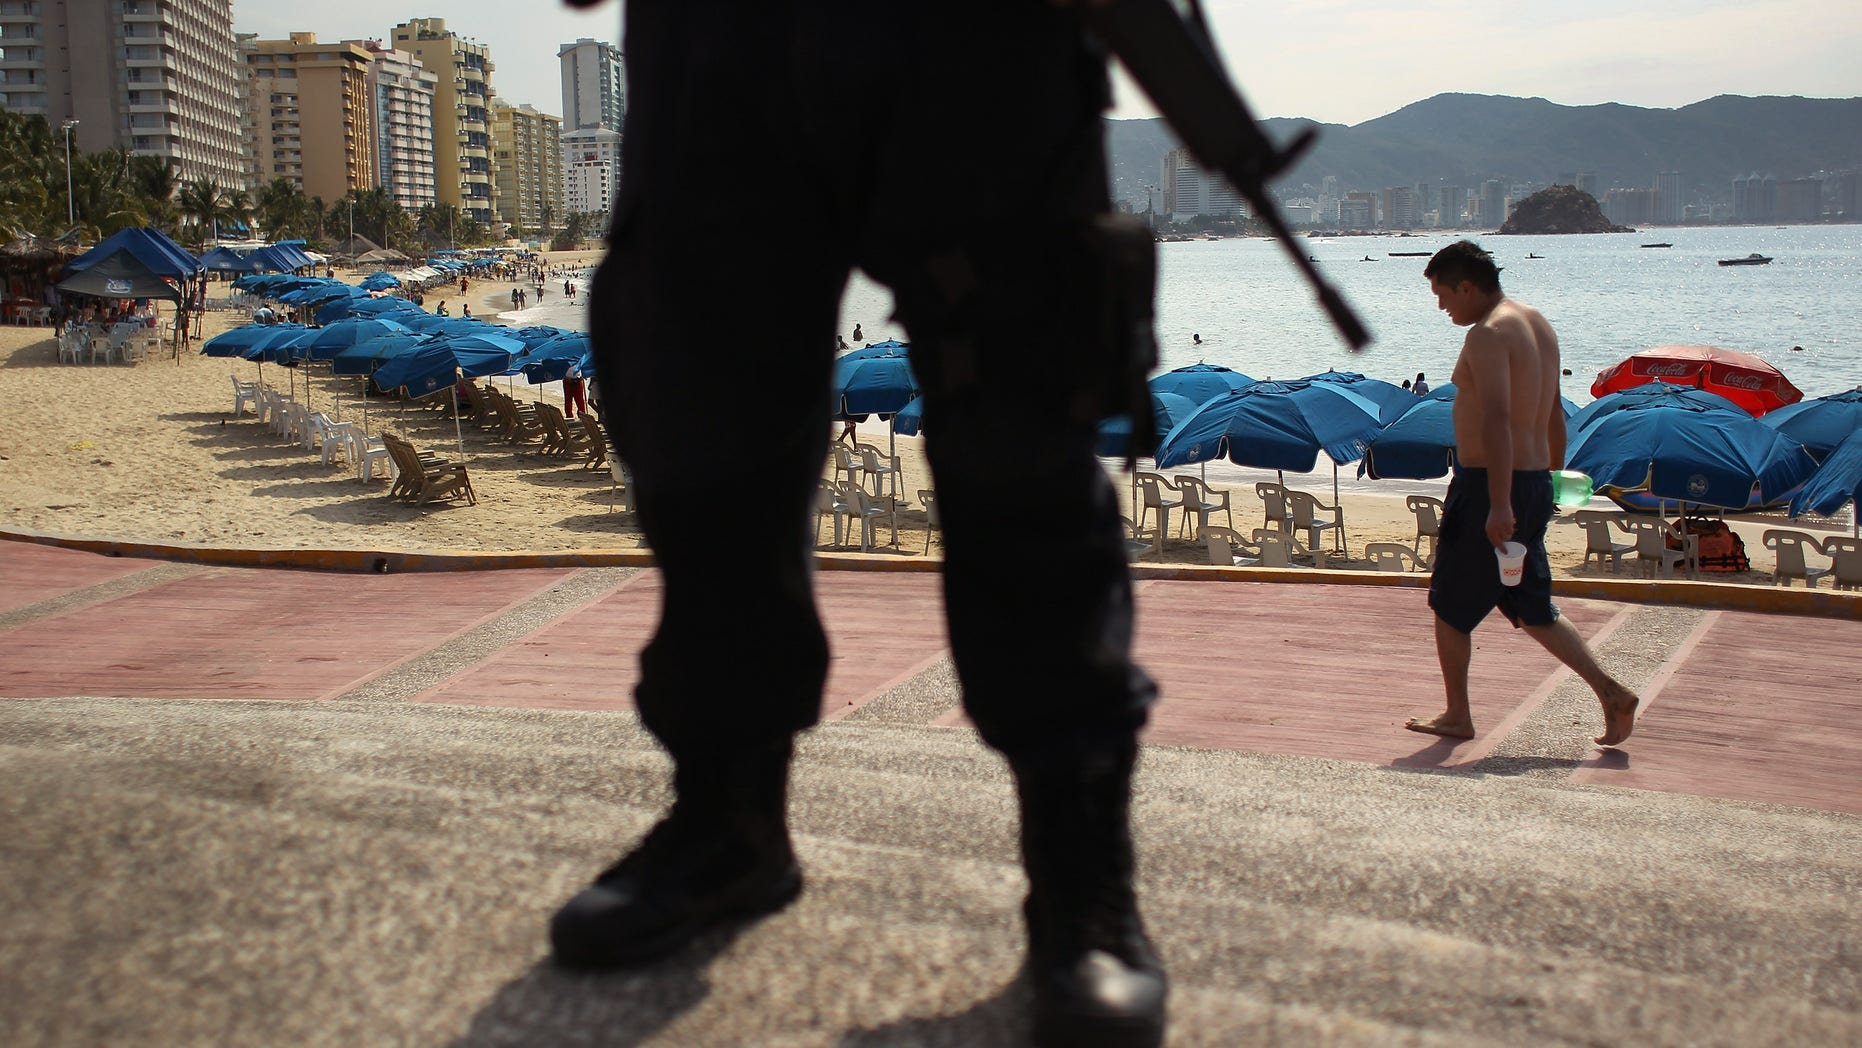 A Mexican federal policeman stands guard near the beach in Acapulco, Mexico.